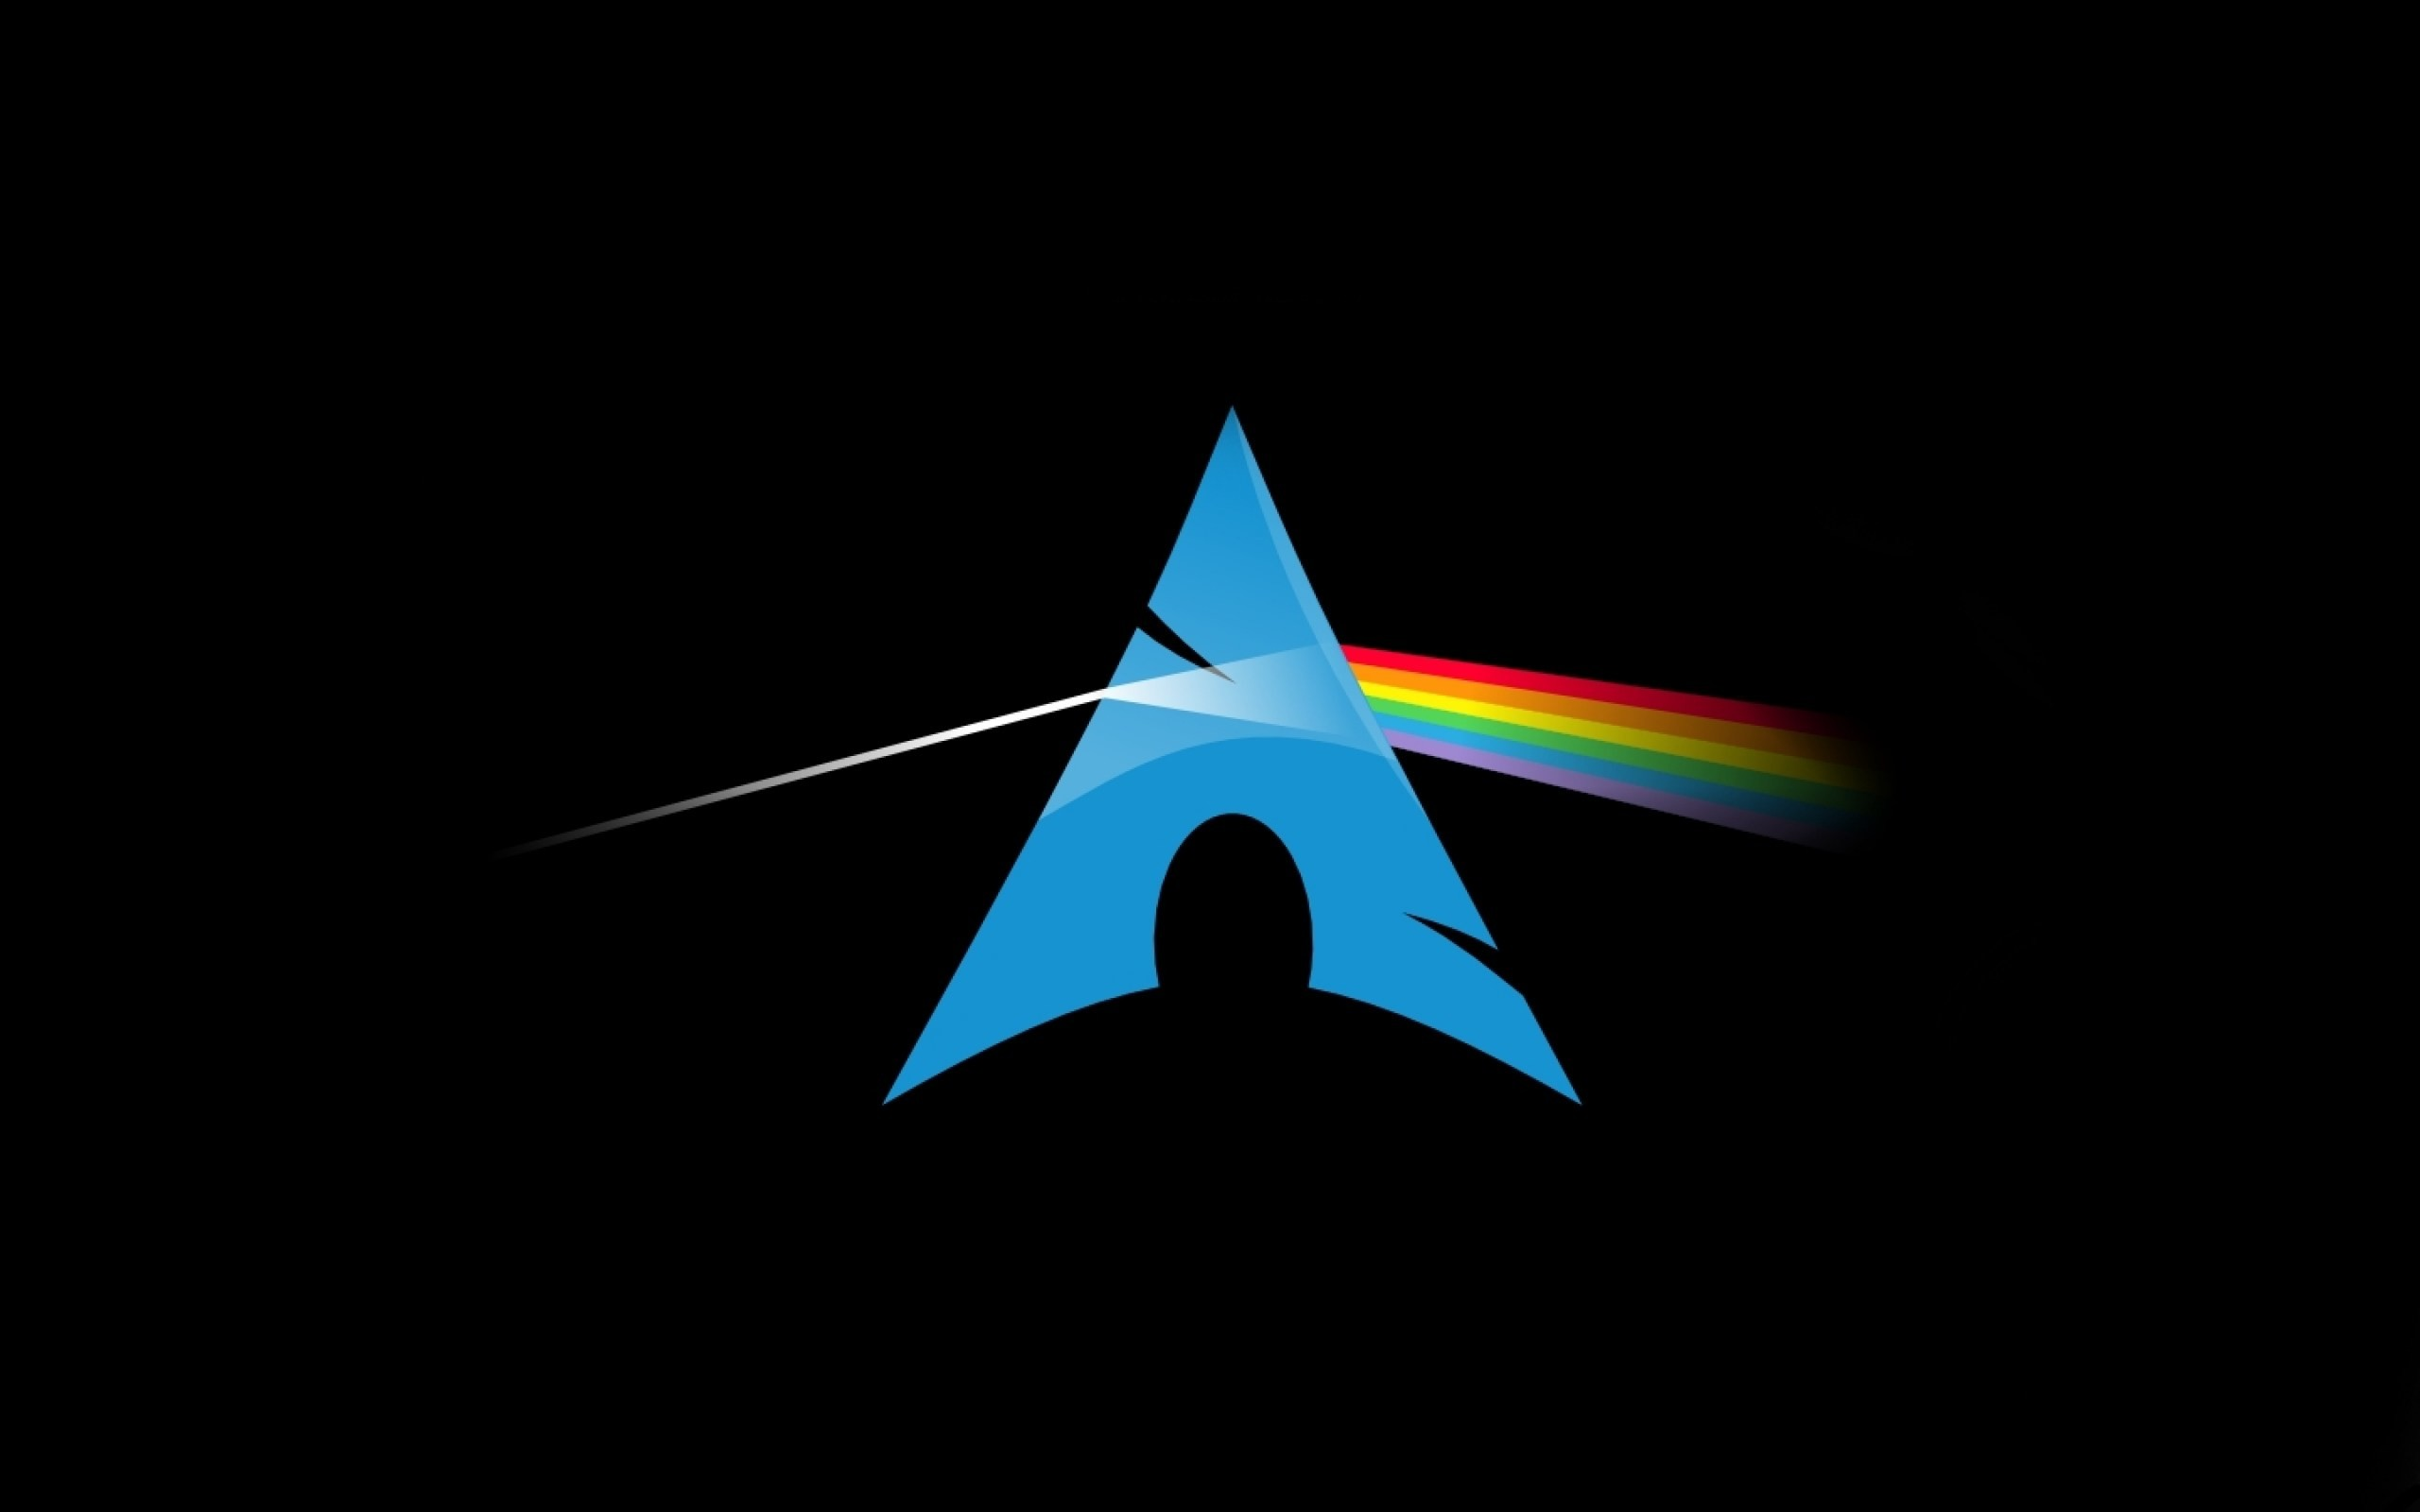 Cool Pink Floyd Dark Side Of The Moon Download Wallpaper Amazing free HD 3D  wallpapers collection